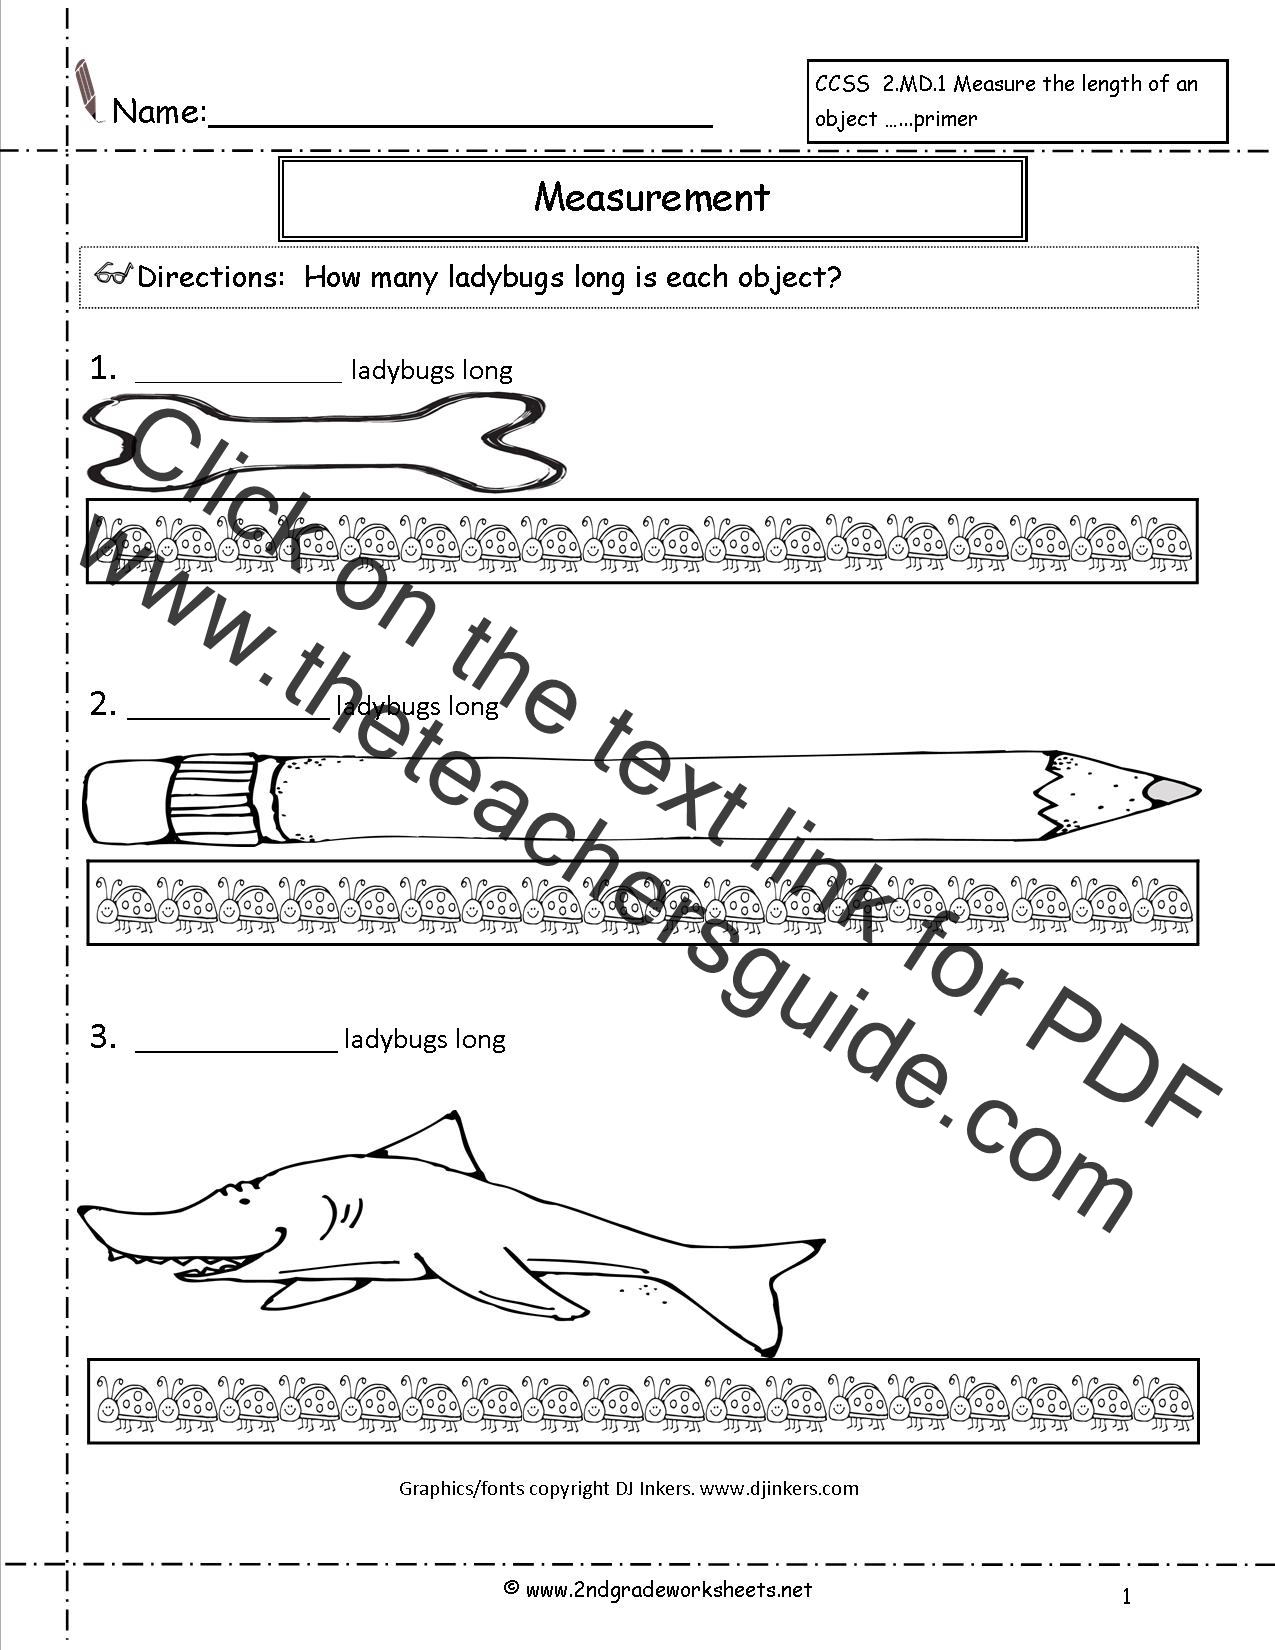 Easy Measurement Worksheet